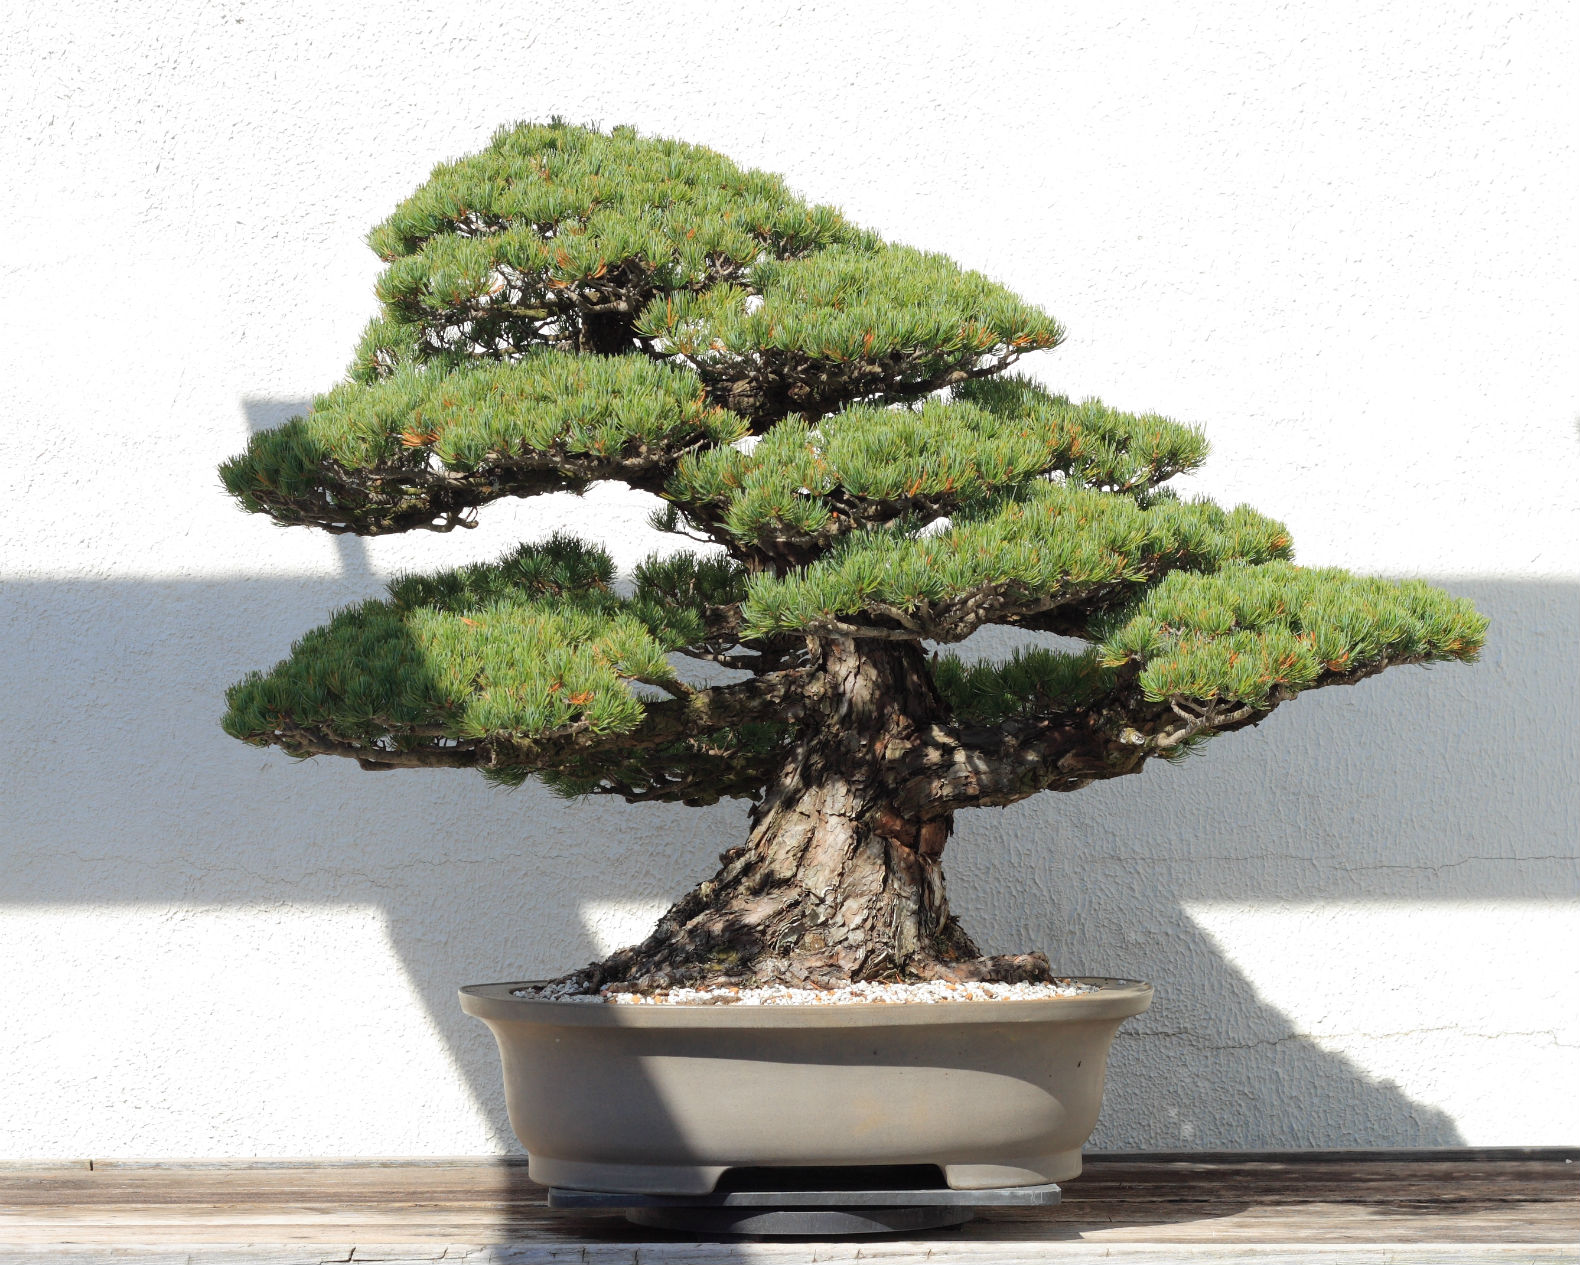 Bonzai Tree this incredible 390-year-old bonsai tree survived an atomic bomb